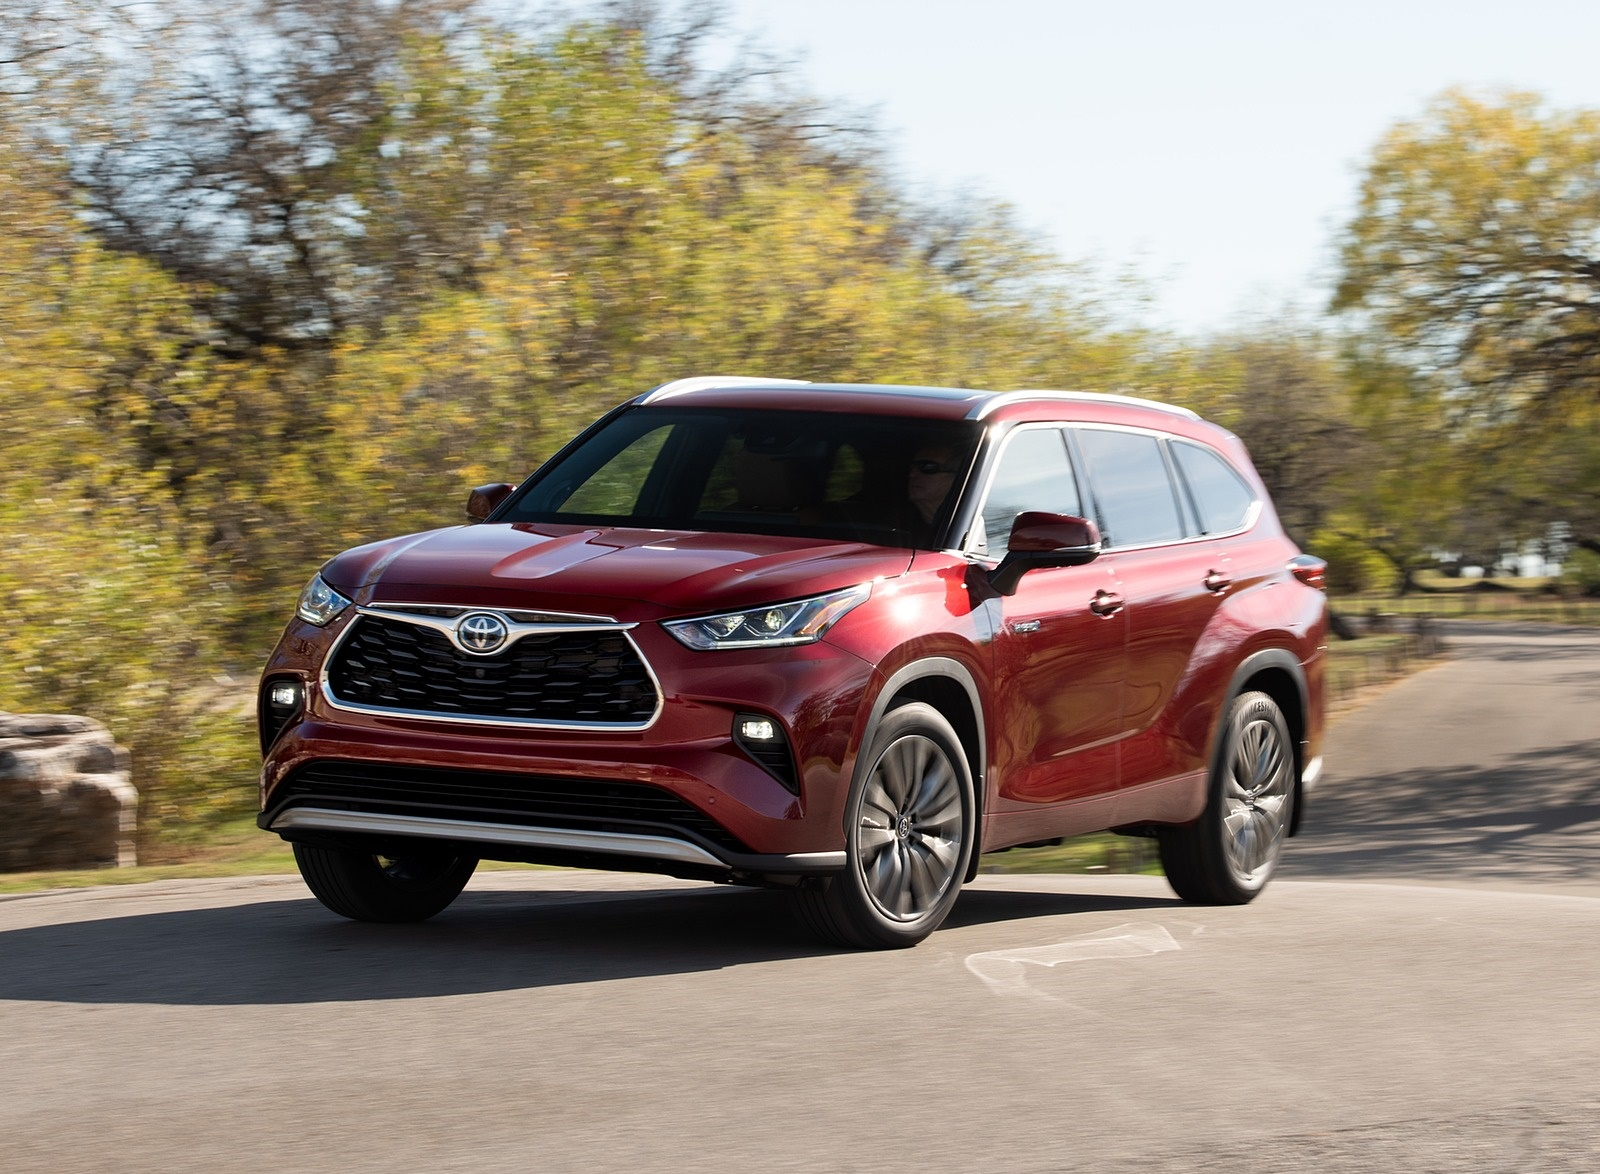 2020 Toyota Highlander Platinum Hybrid AWD (Color: Ruby Flare Pearl) Front Three-Quarter Wallpapers (1)